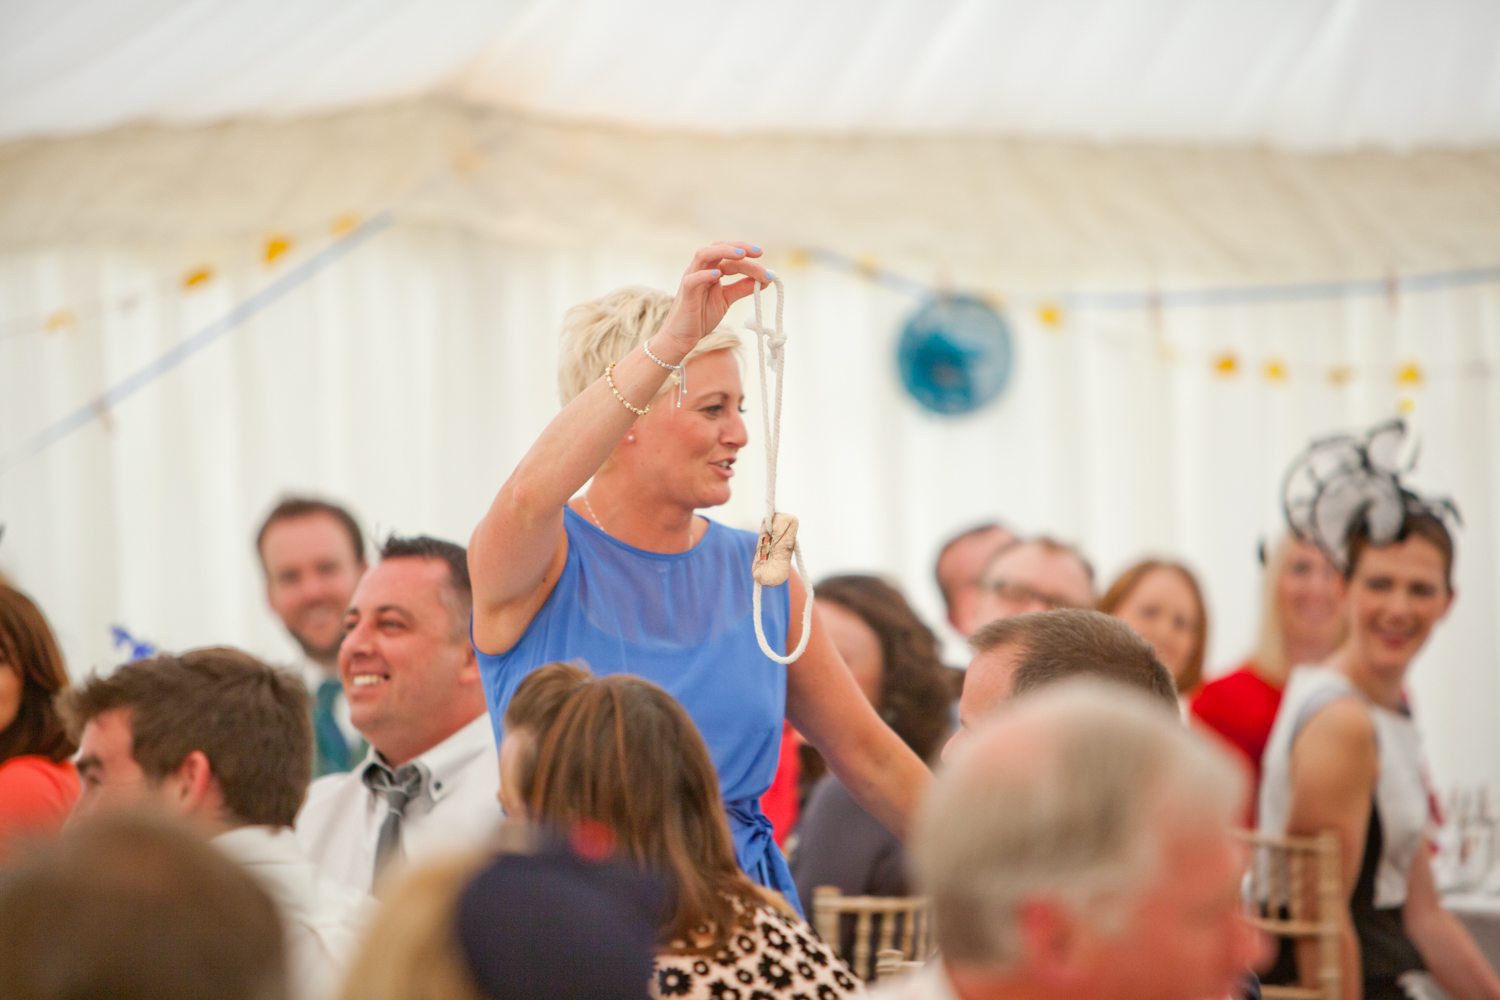 PICTORIAL_BERWICK_WEDDING_FARM_MARQUEE_RAIN_WEATHER_ROTHBURY_MINI_STYLE-6799.jpg